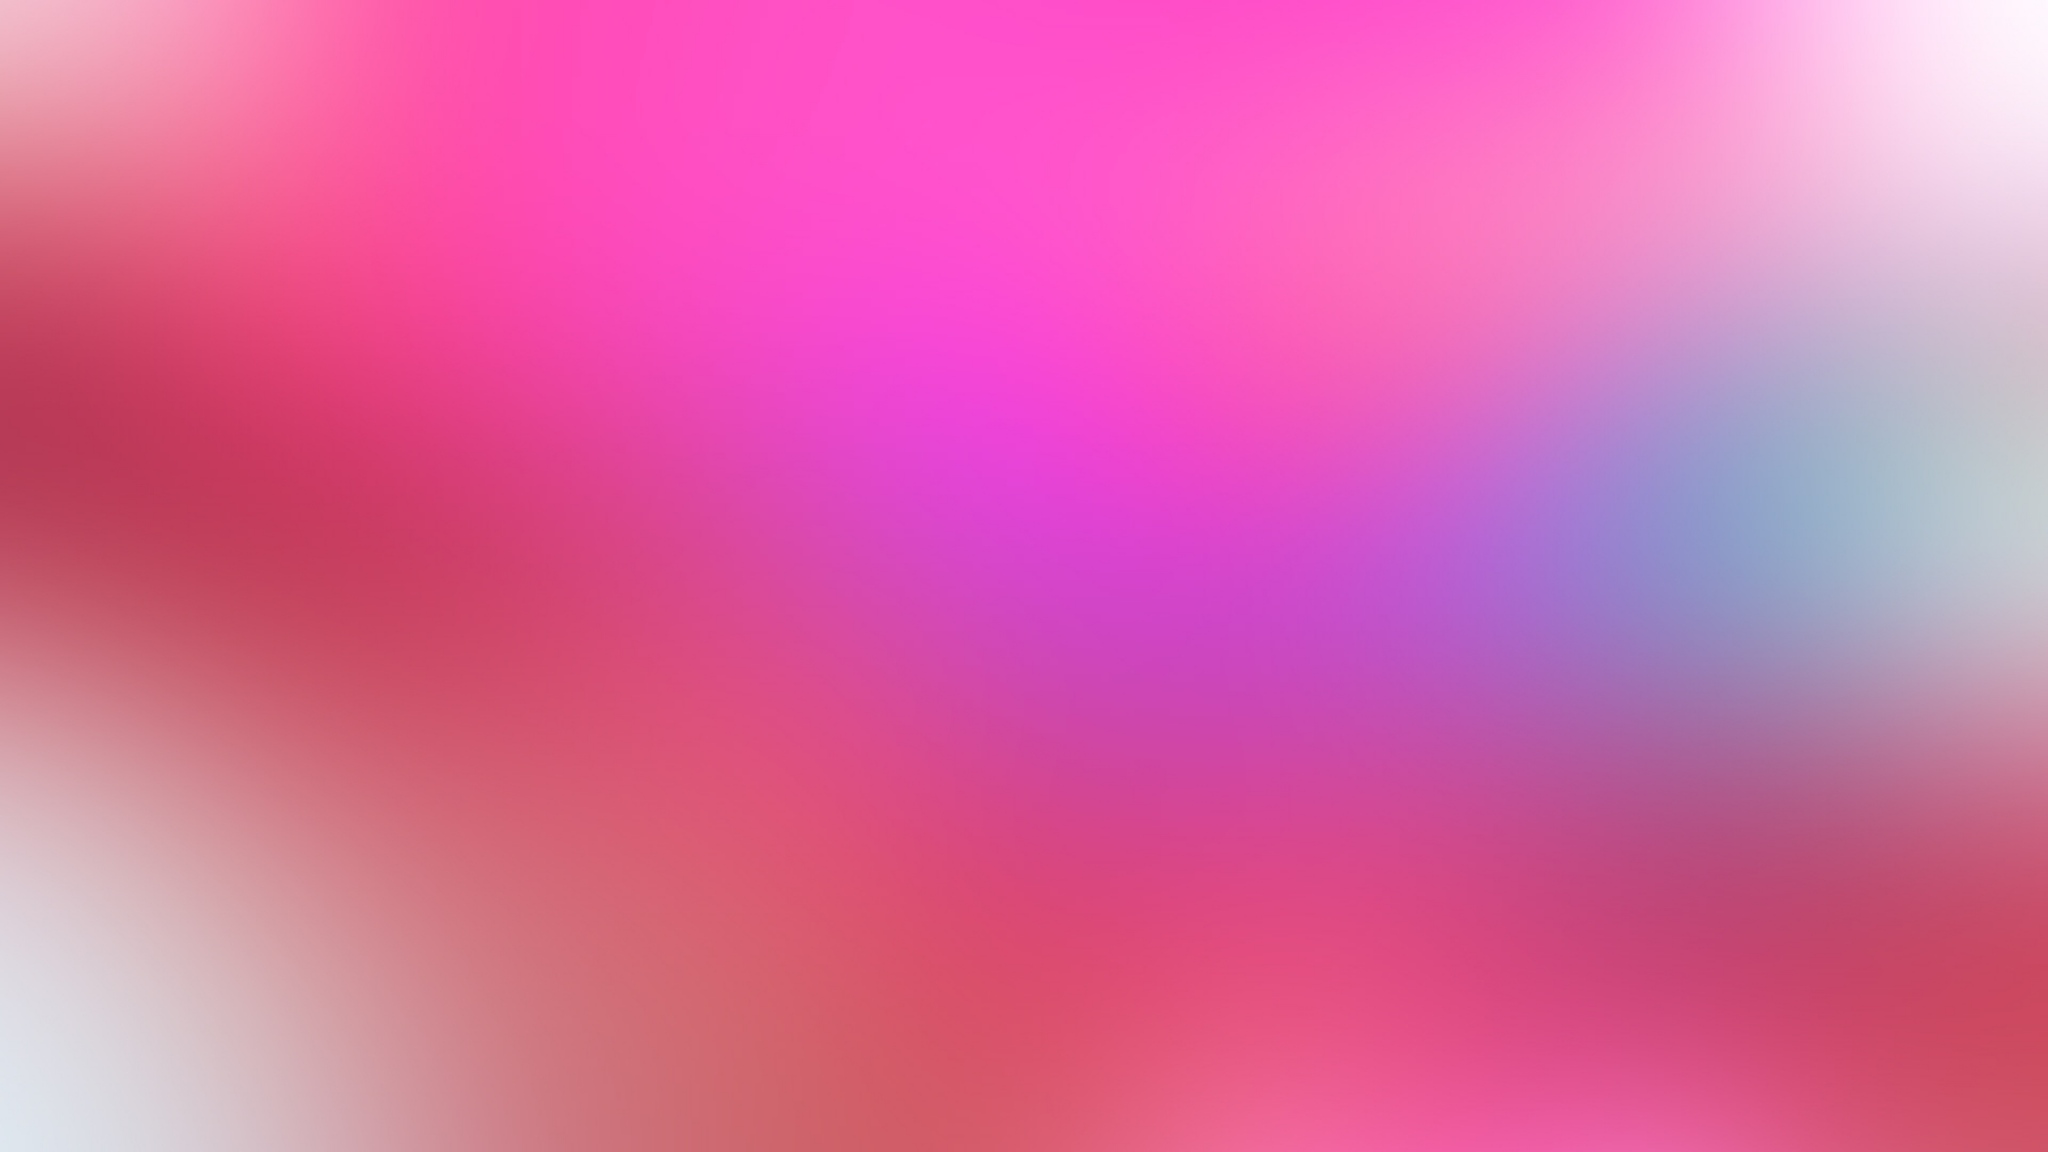 Wallpaper 2048x1152 Pink Red Spots Colorful HD HD Background 2048x1152